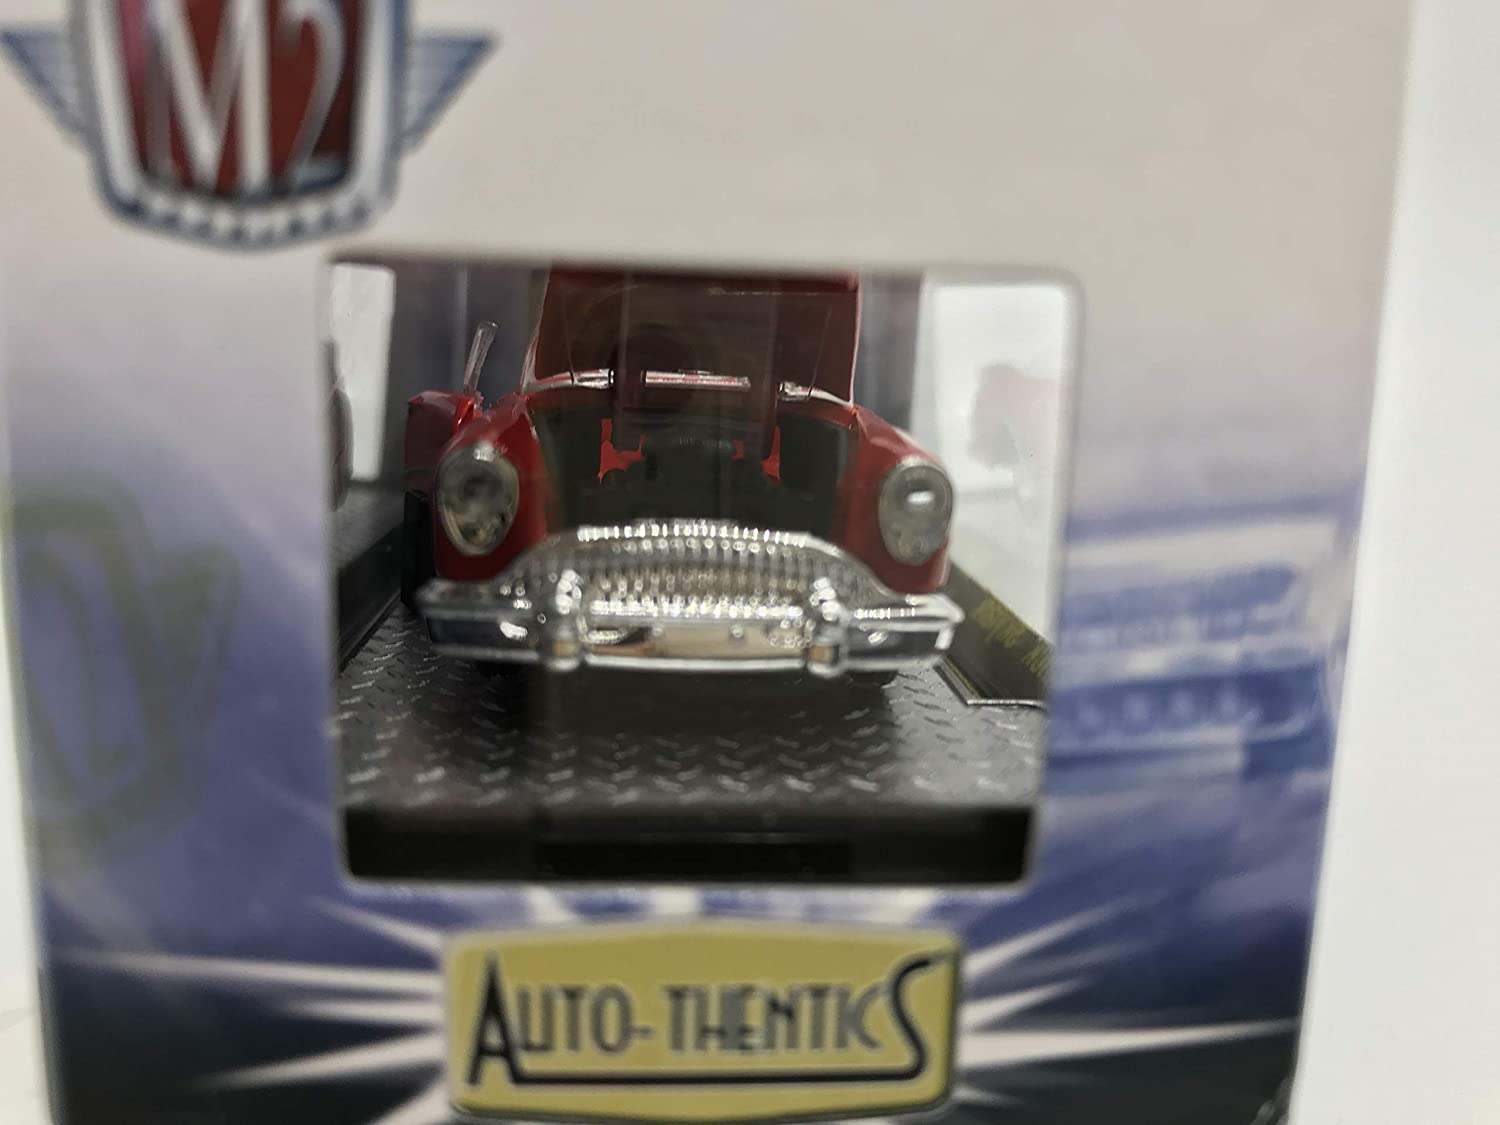 M2 Machines Auto-Thentics 1954 Buick Skylark 1:64 Scale R27 13-11 Red Details Like NO Other Over 42 Parts 1 of 5000